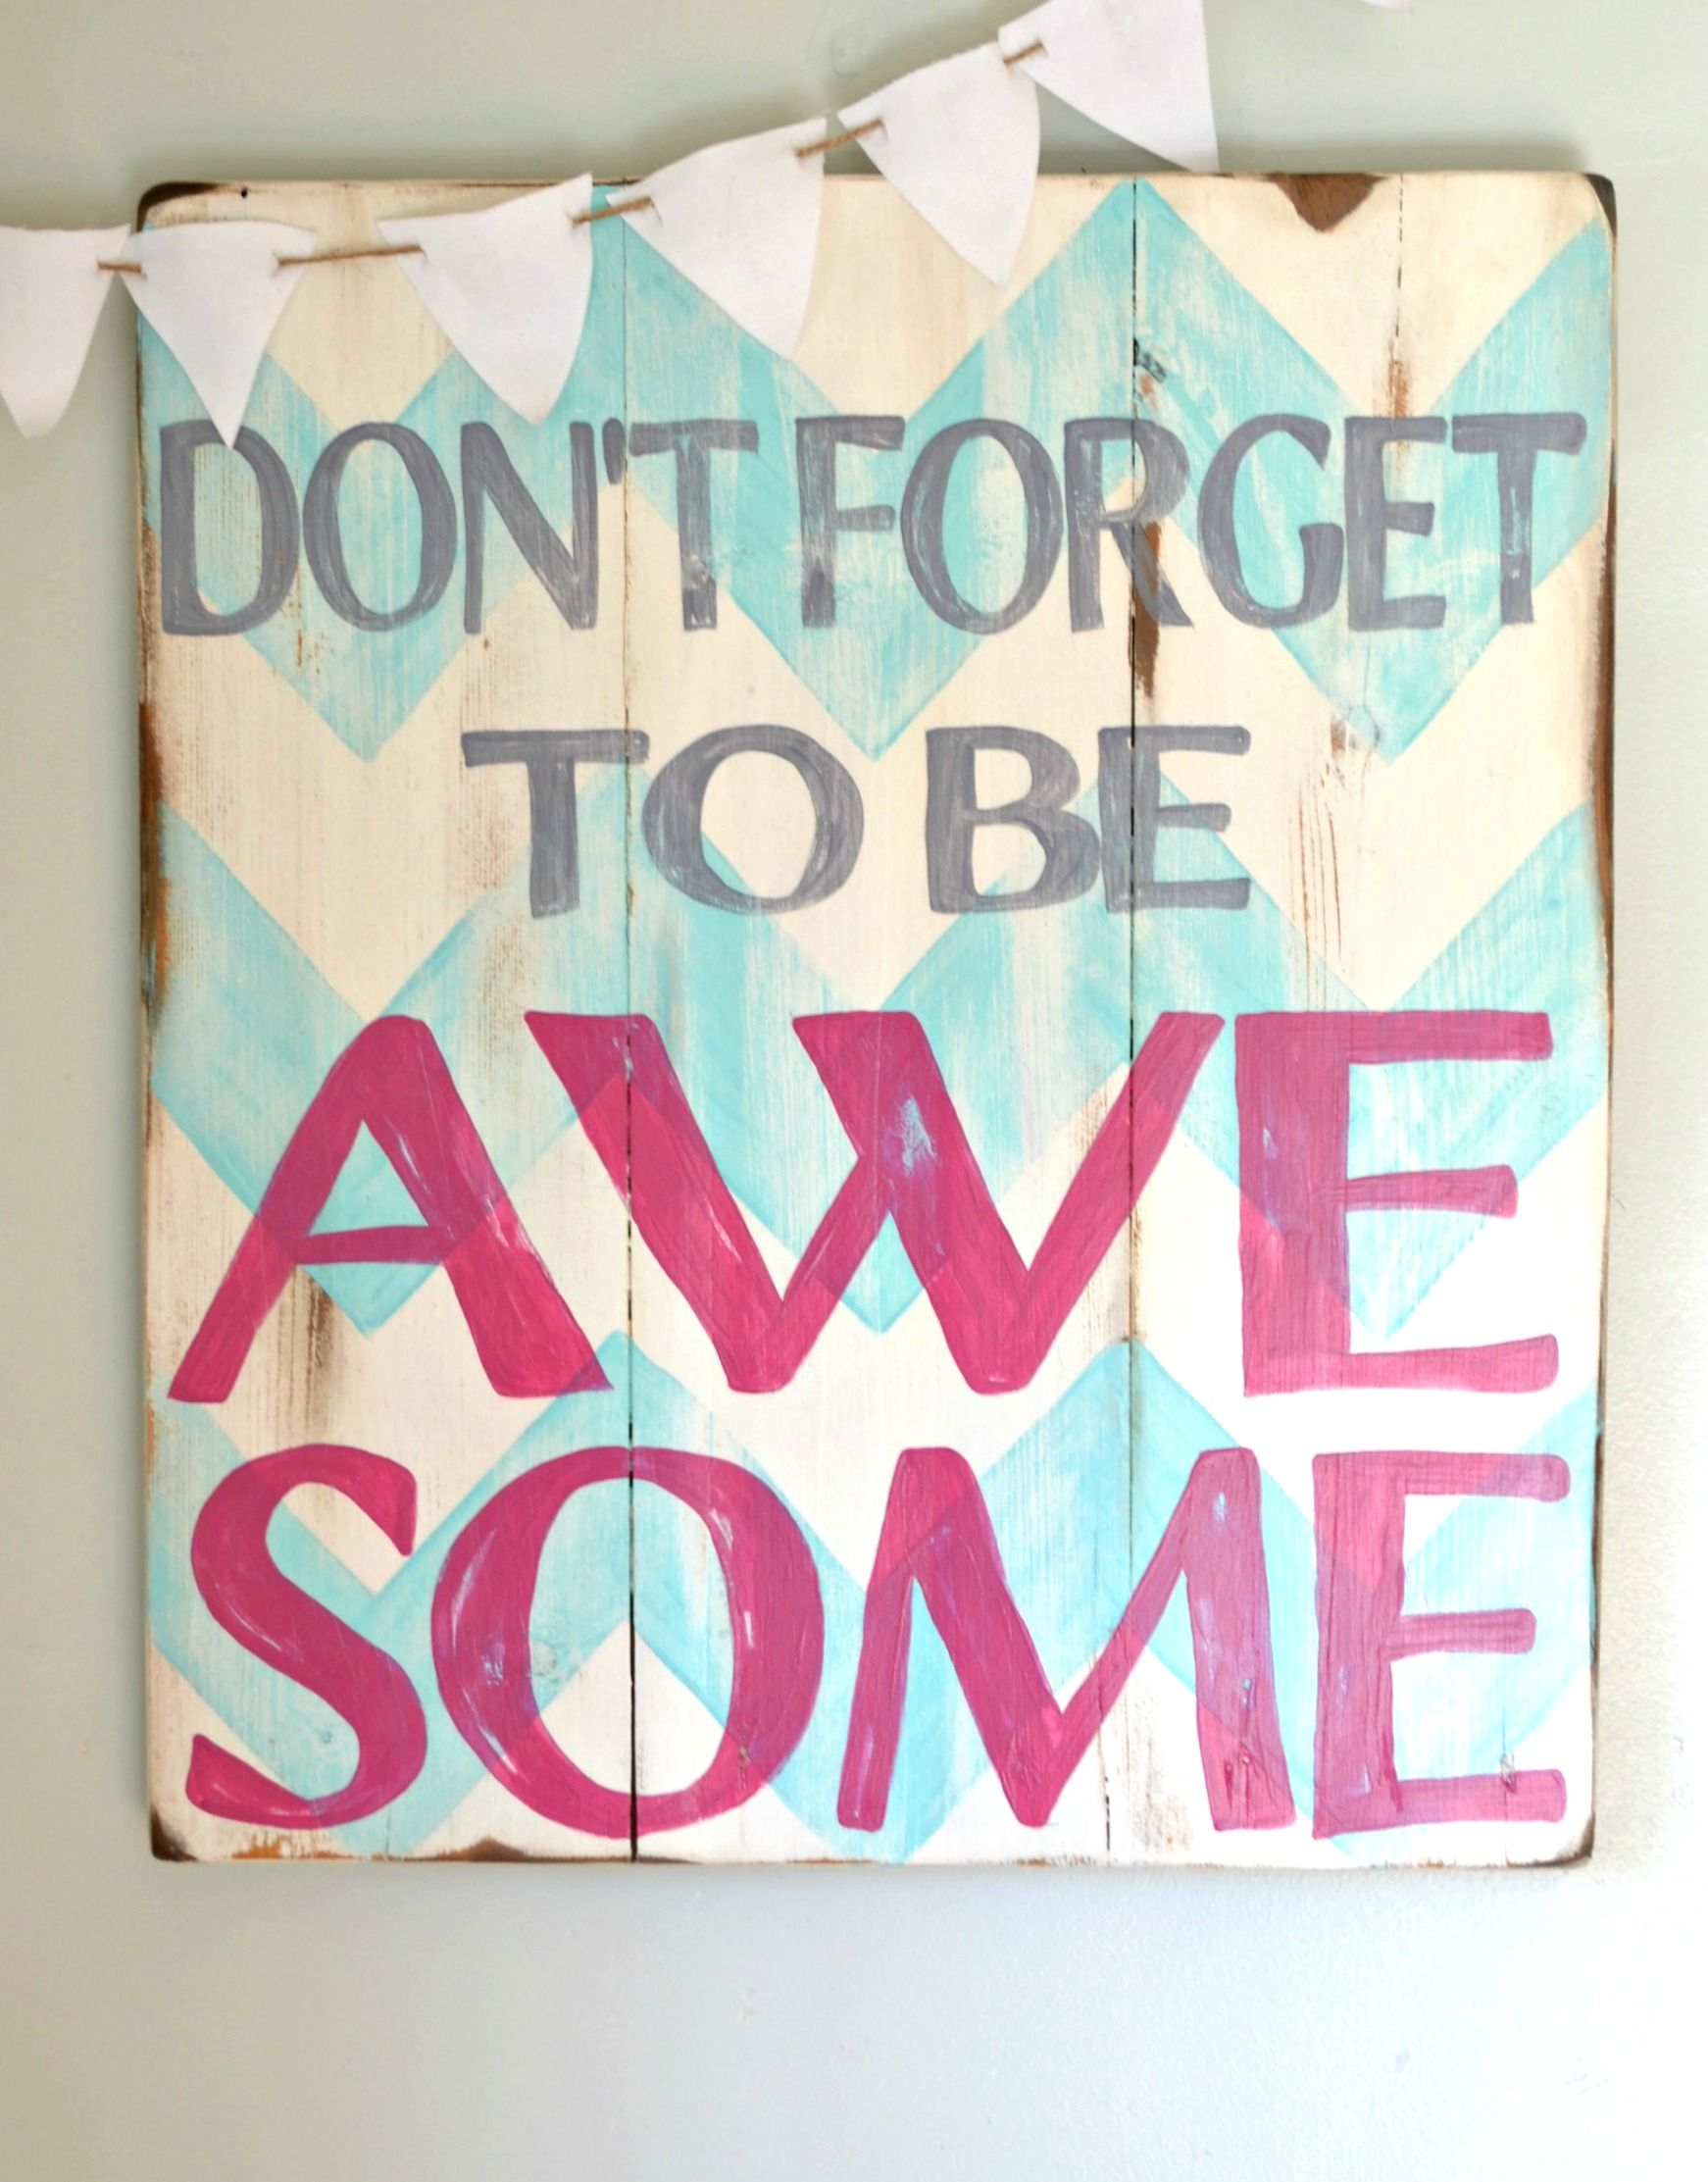 sign-dont-forget-to-be-awesome1.jpg 1,742×2,225 pixels